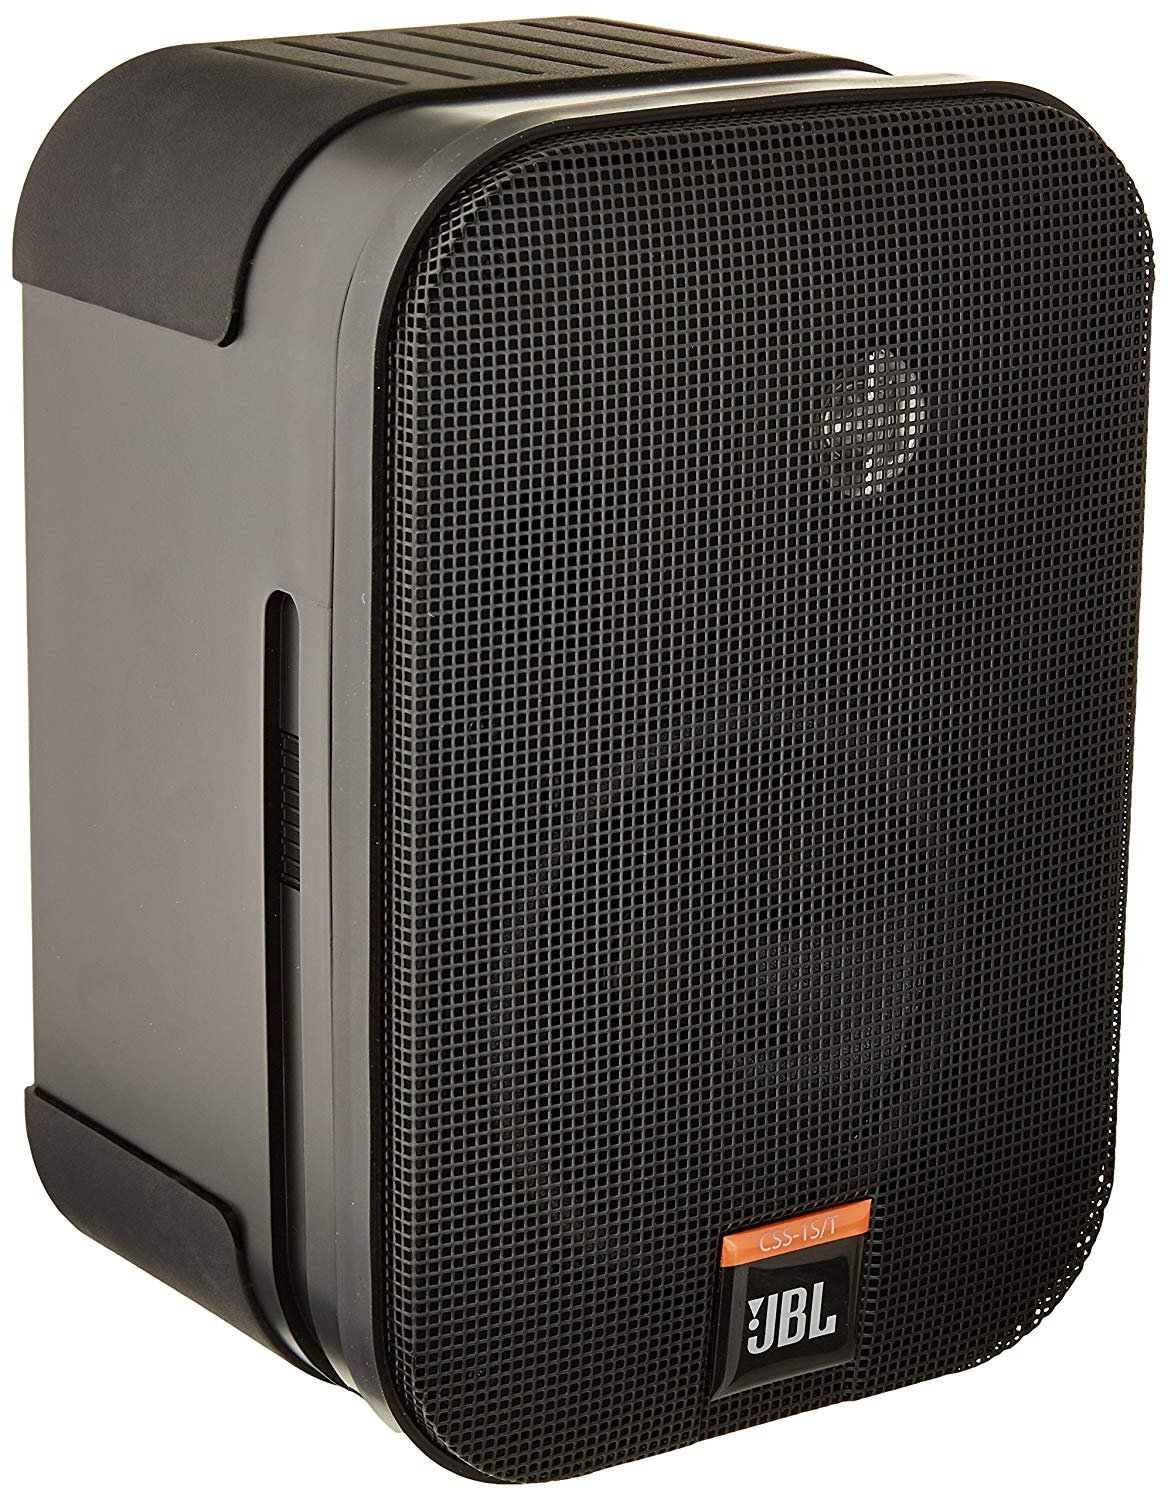 Amazon.com: JBL CSS-1S/T Compact Two-Way 100V/70V/8-Ohm Loudspeaker, Black (sold as pair): Musical Instruments